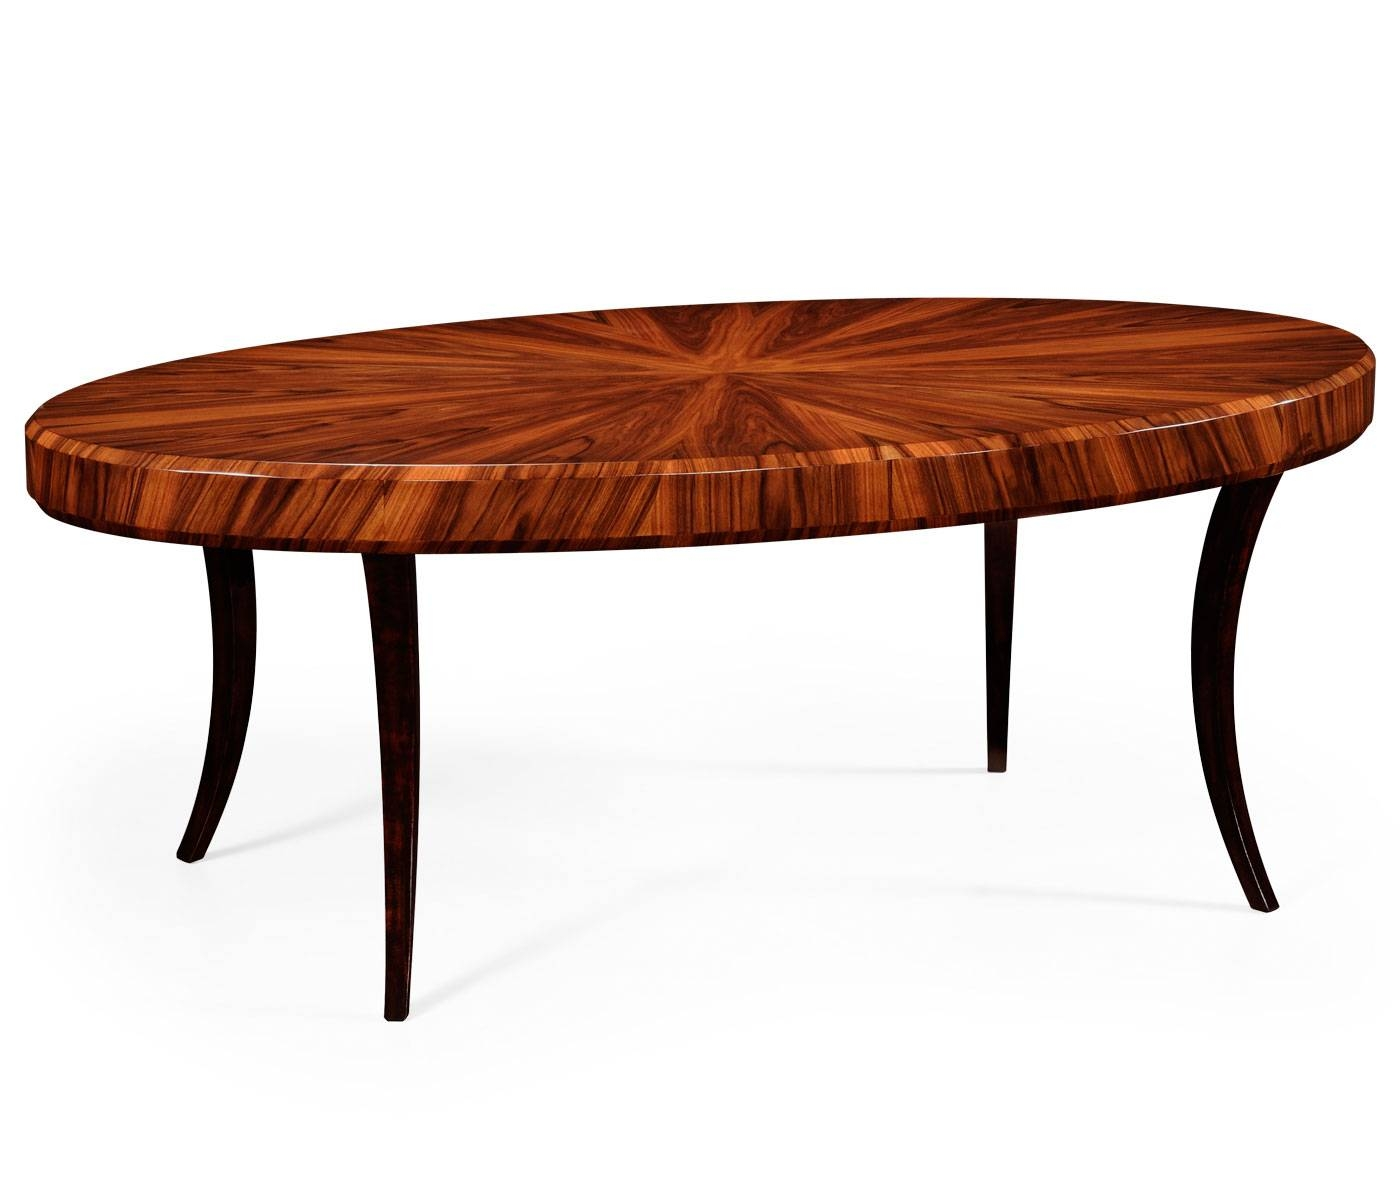 Best Oval Coffee Tables pertaining to Art Coffee Tables (Image 15 of 30)